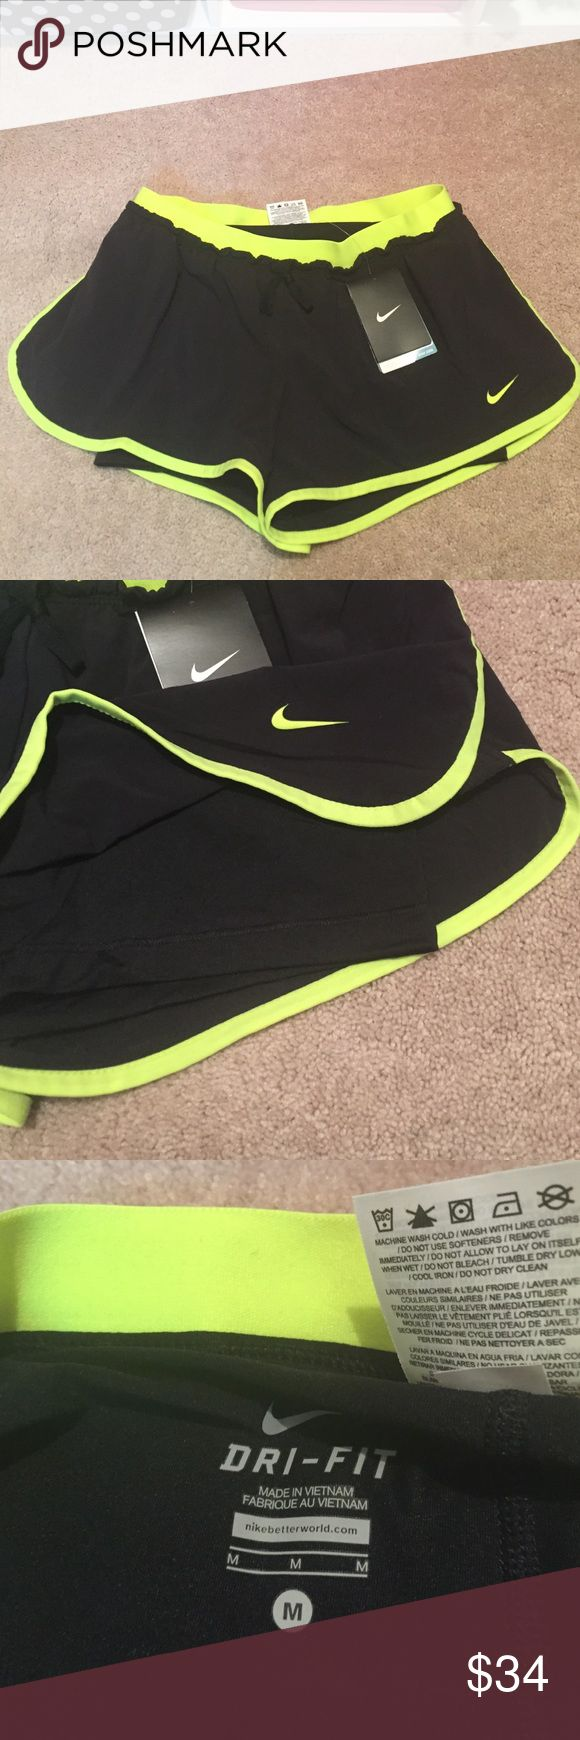 NWT size medium Nike dri-fit shorts New with tags size medium Nike dri-fit shorts. Shorts and black and a neon yellow/green and have attached spandex shorts on the inside Nike Shorts